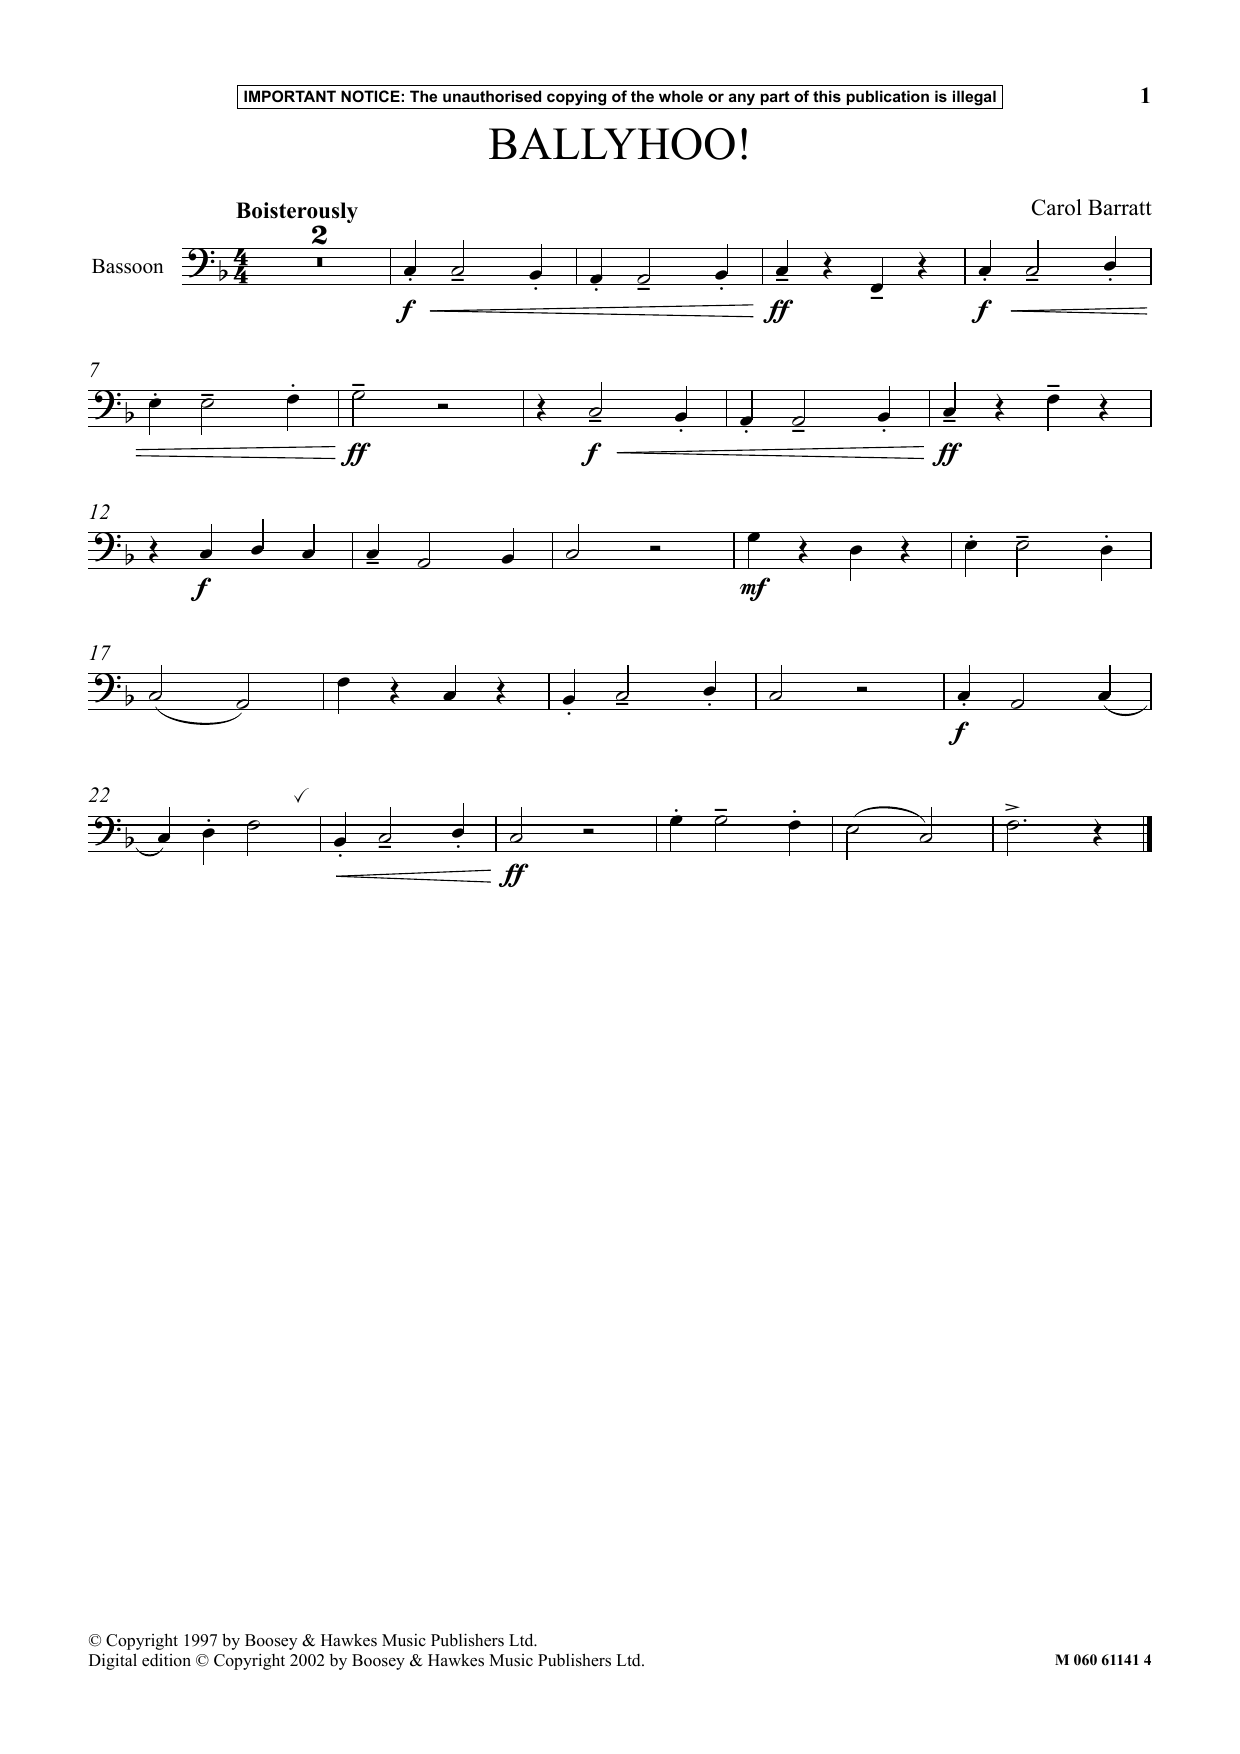 Ballyhoo! Sheet Music